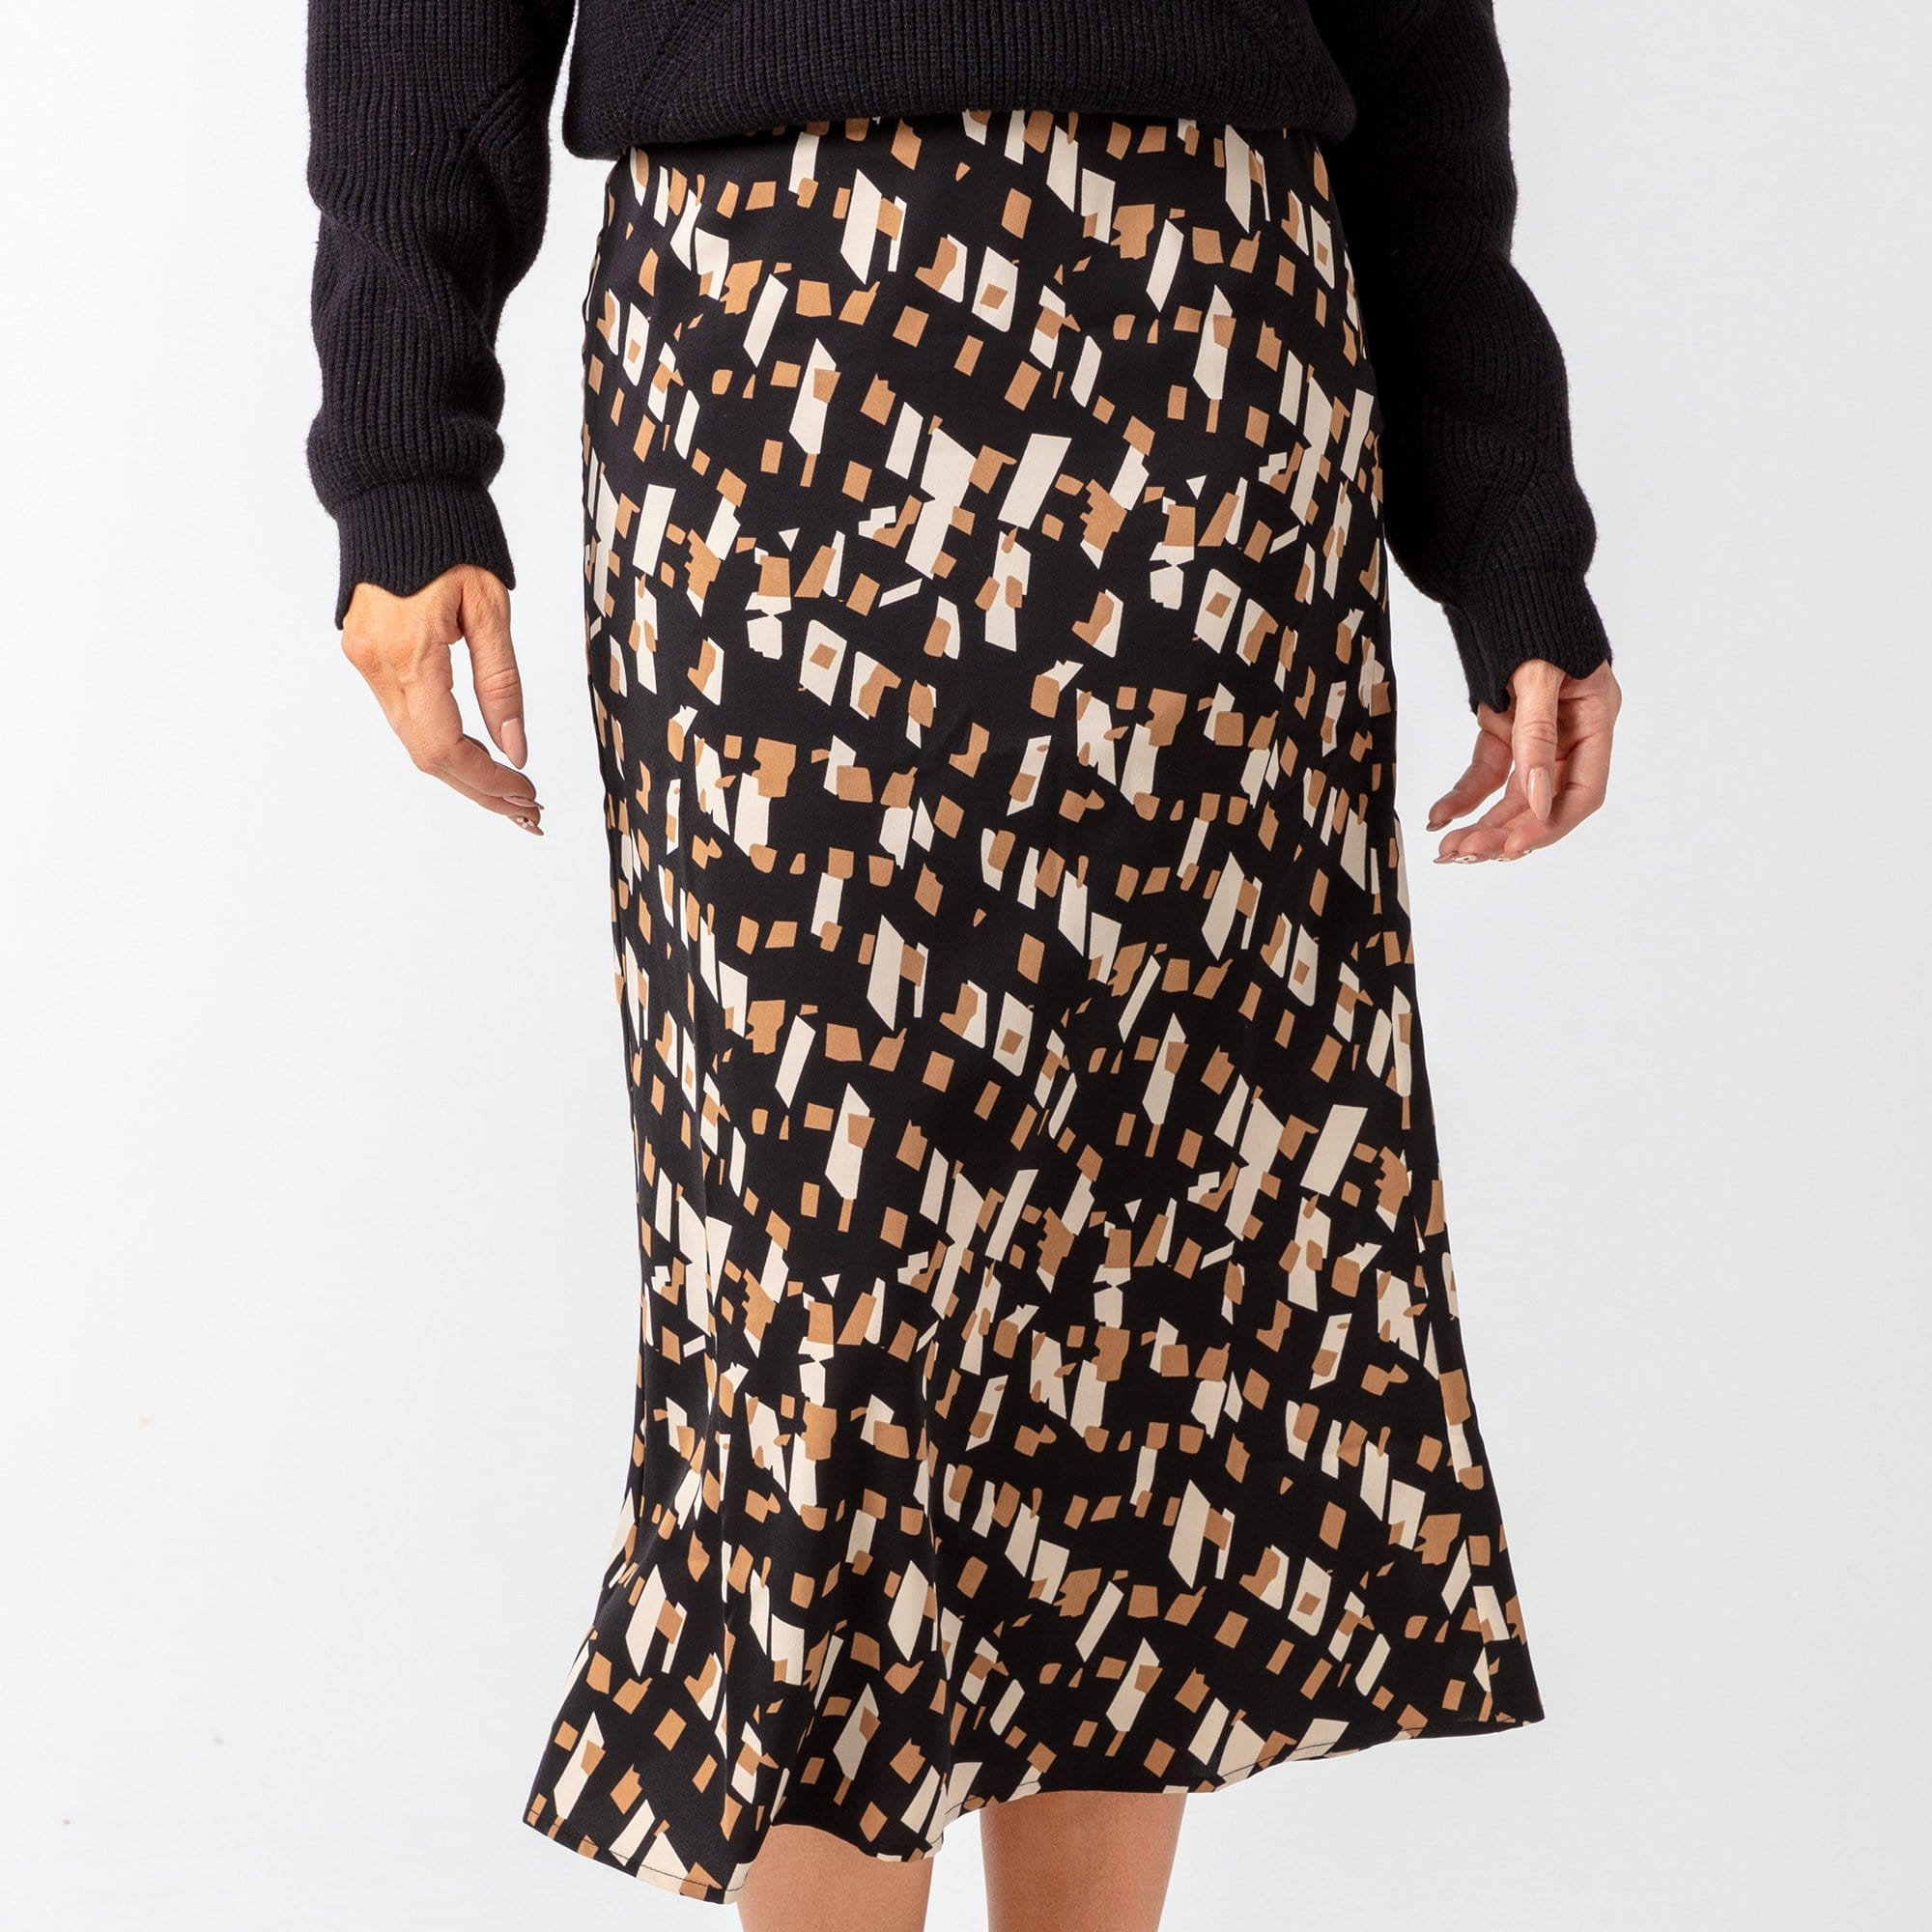 Brinley Printed Skirt